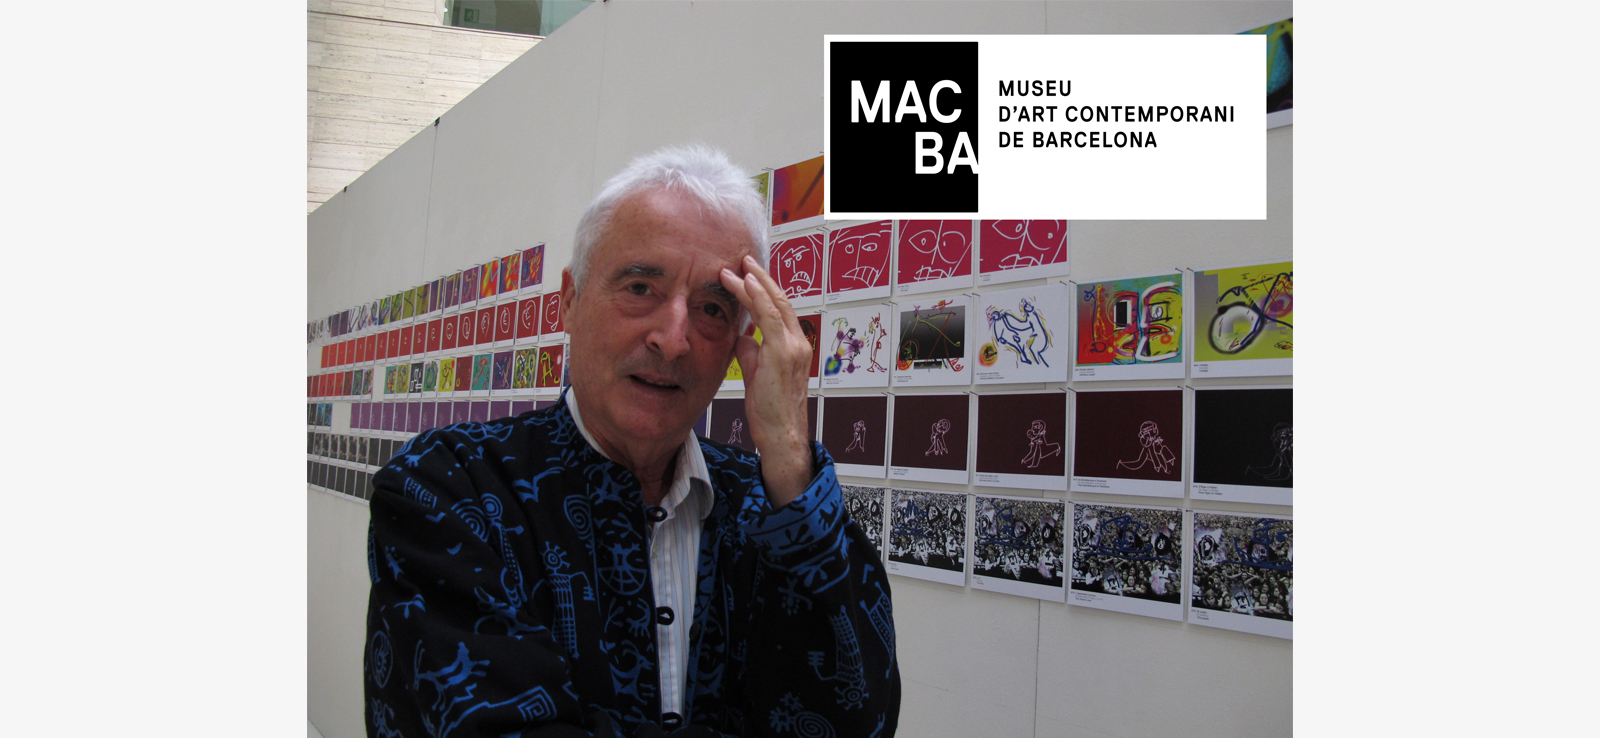 Antoni-Pinent-curator-exhibition-Benet-Rossell-curator-Behind-and-in-Front-of-the-Camera-macba